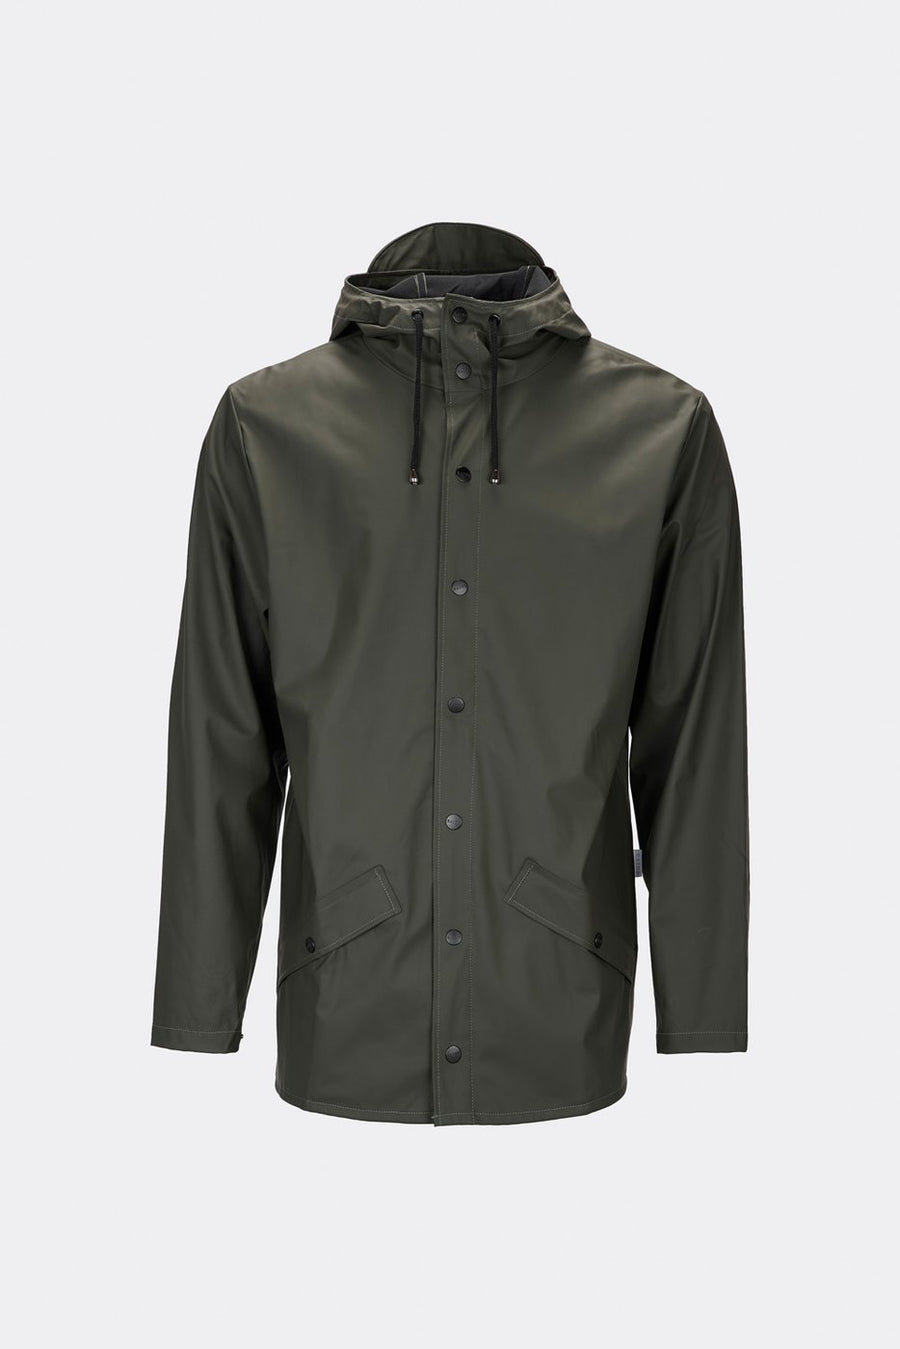 Rains Waterproof Unisex Jacket - Green